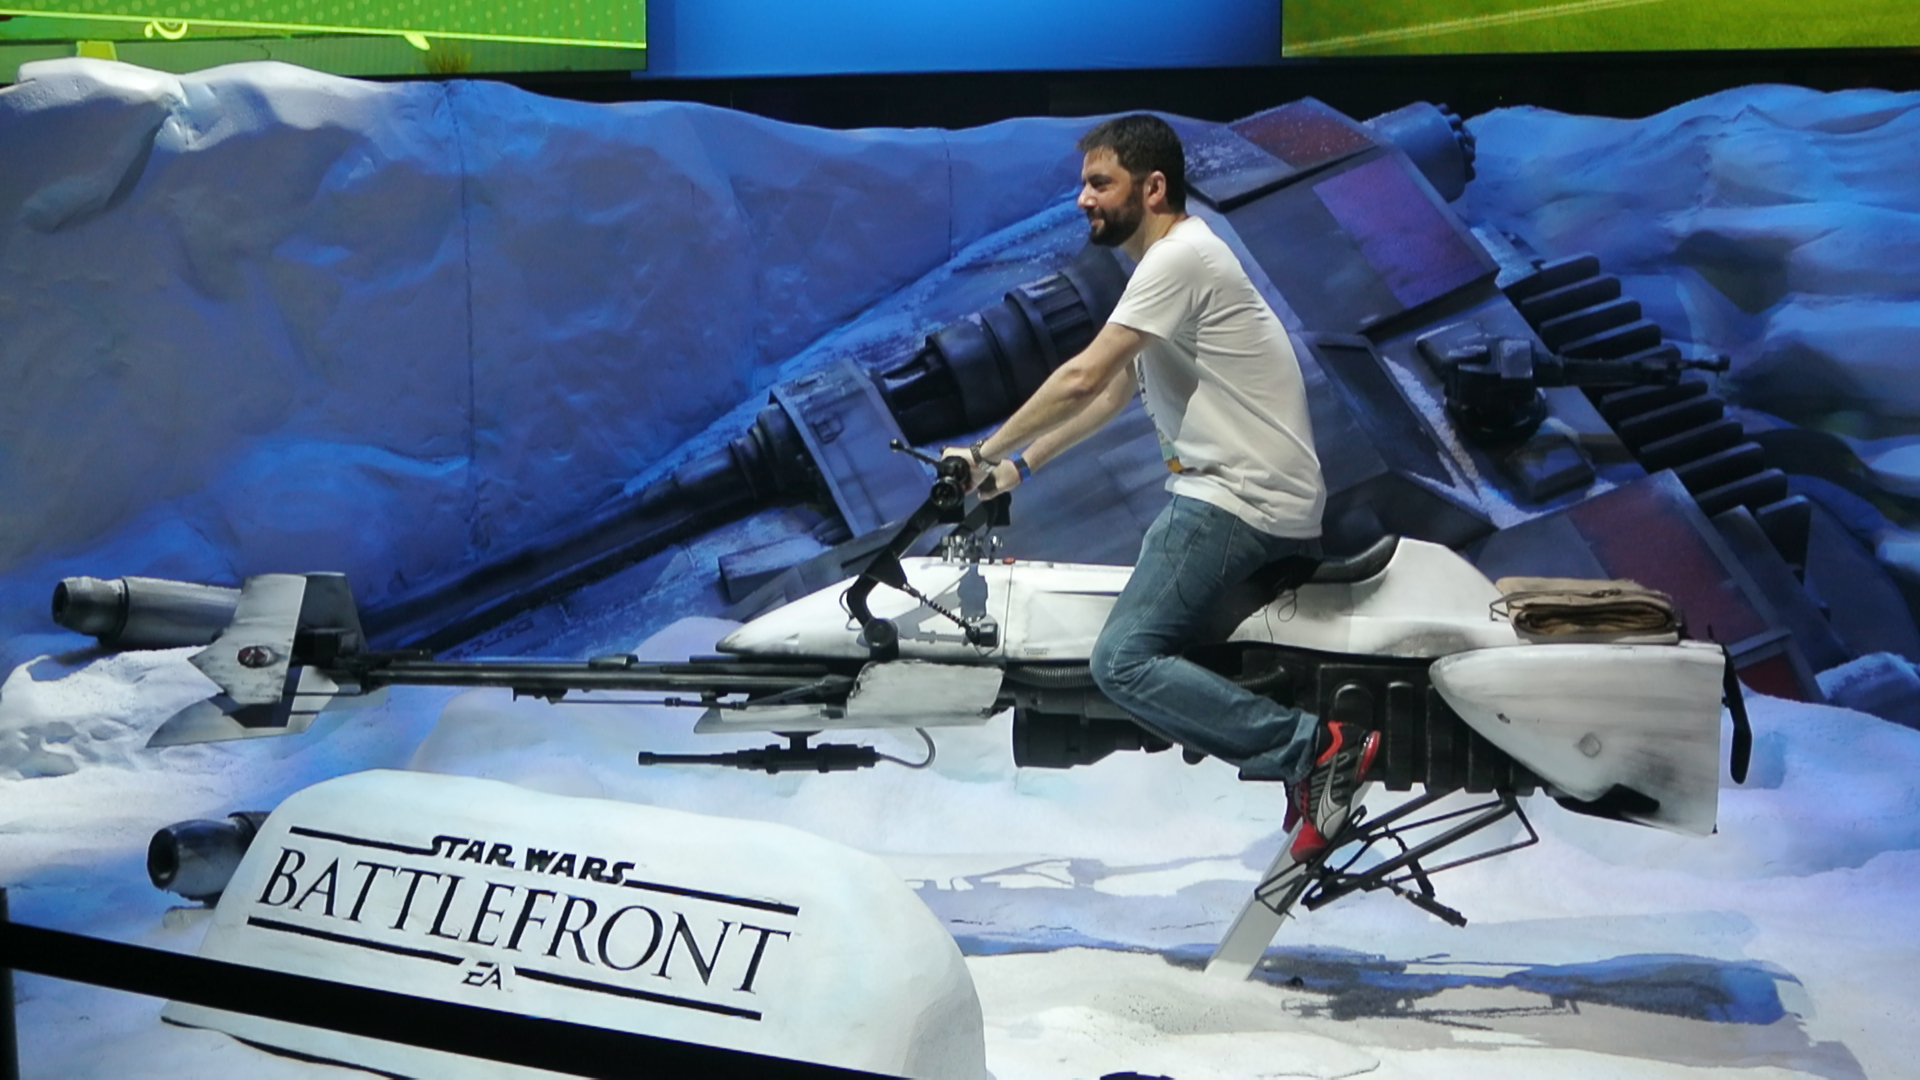 A fan rides a speeder bike at Electronic Arts' Star Wars Battlefront booth at E3 2015